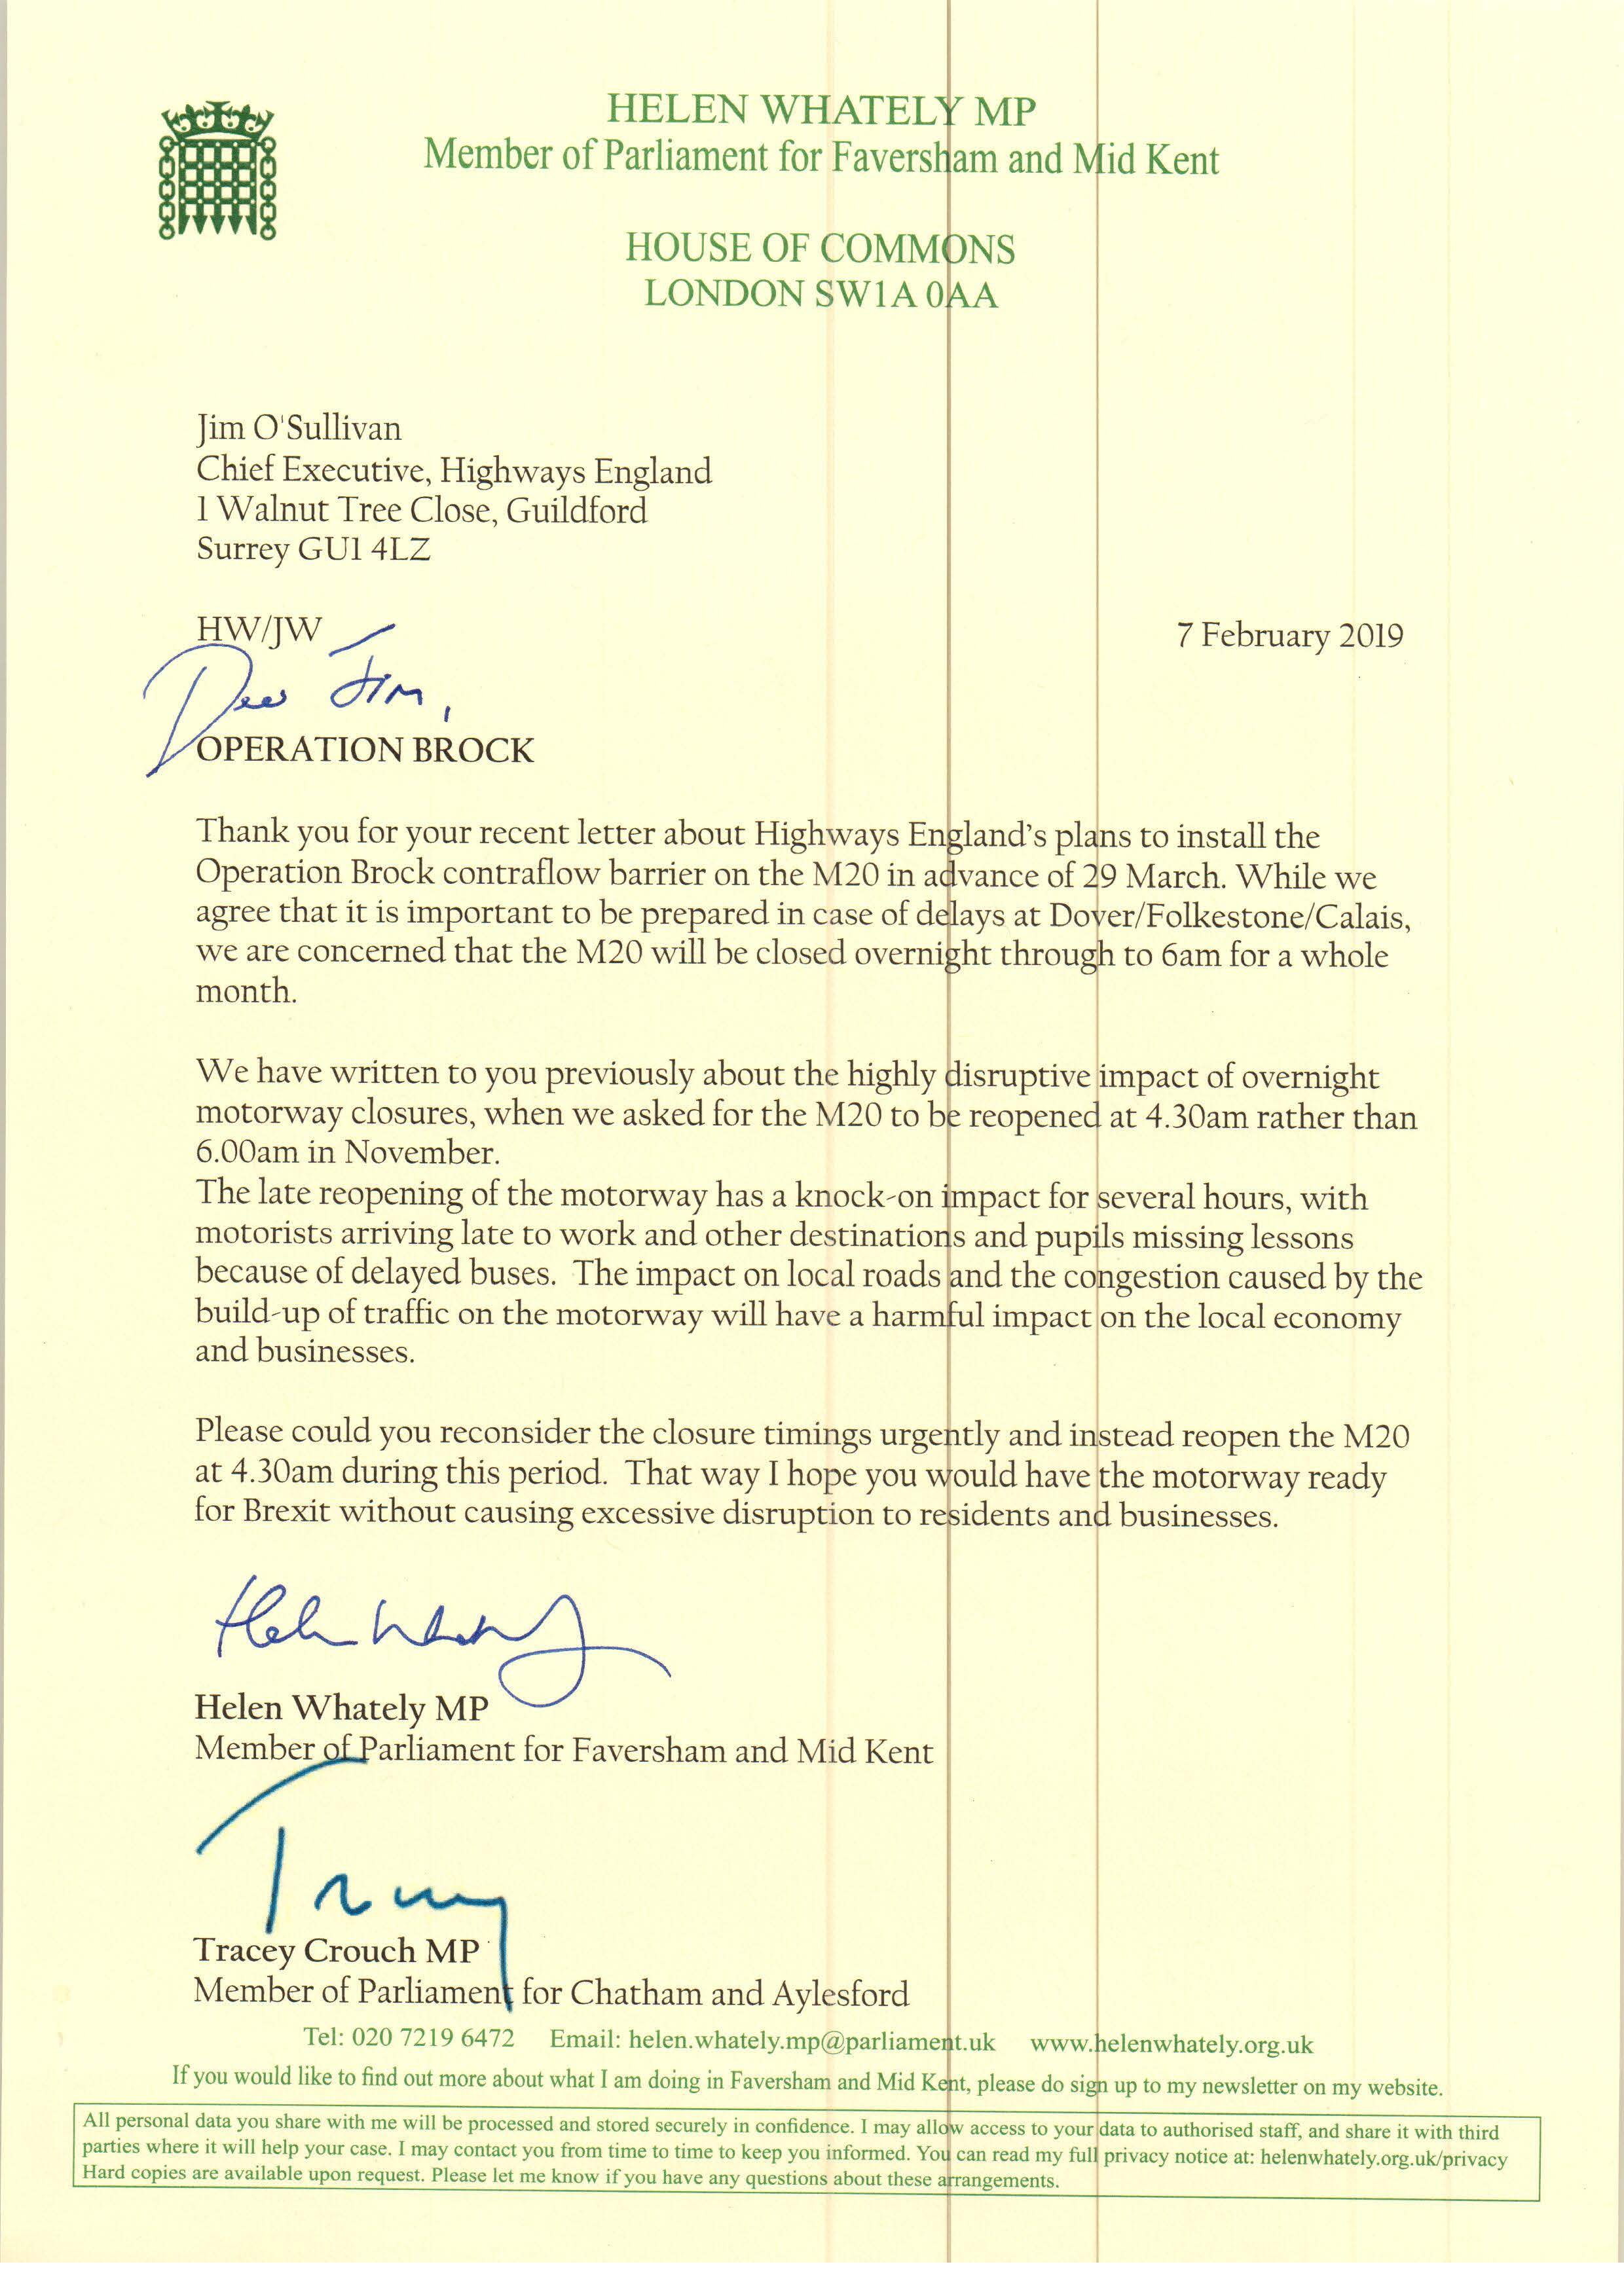 Following my letter to Highways England in November, I, along with a number of other Kent MPs, have written to them again to ask that the M20 reopen at 4.30am rather than the currently planned 6am while the Operation Brock contraflow barrier is installed. To see the letter in full, please click  here .